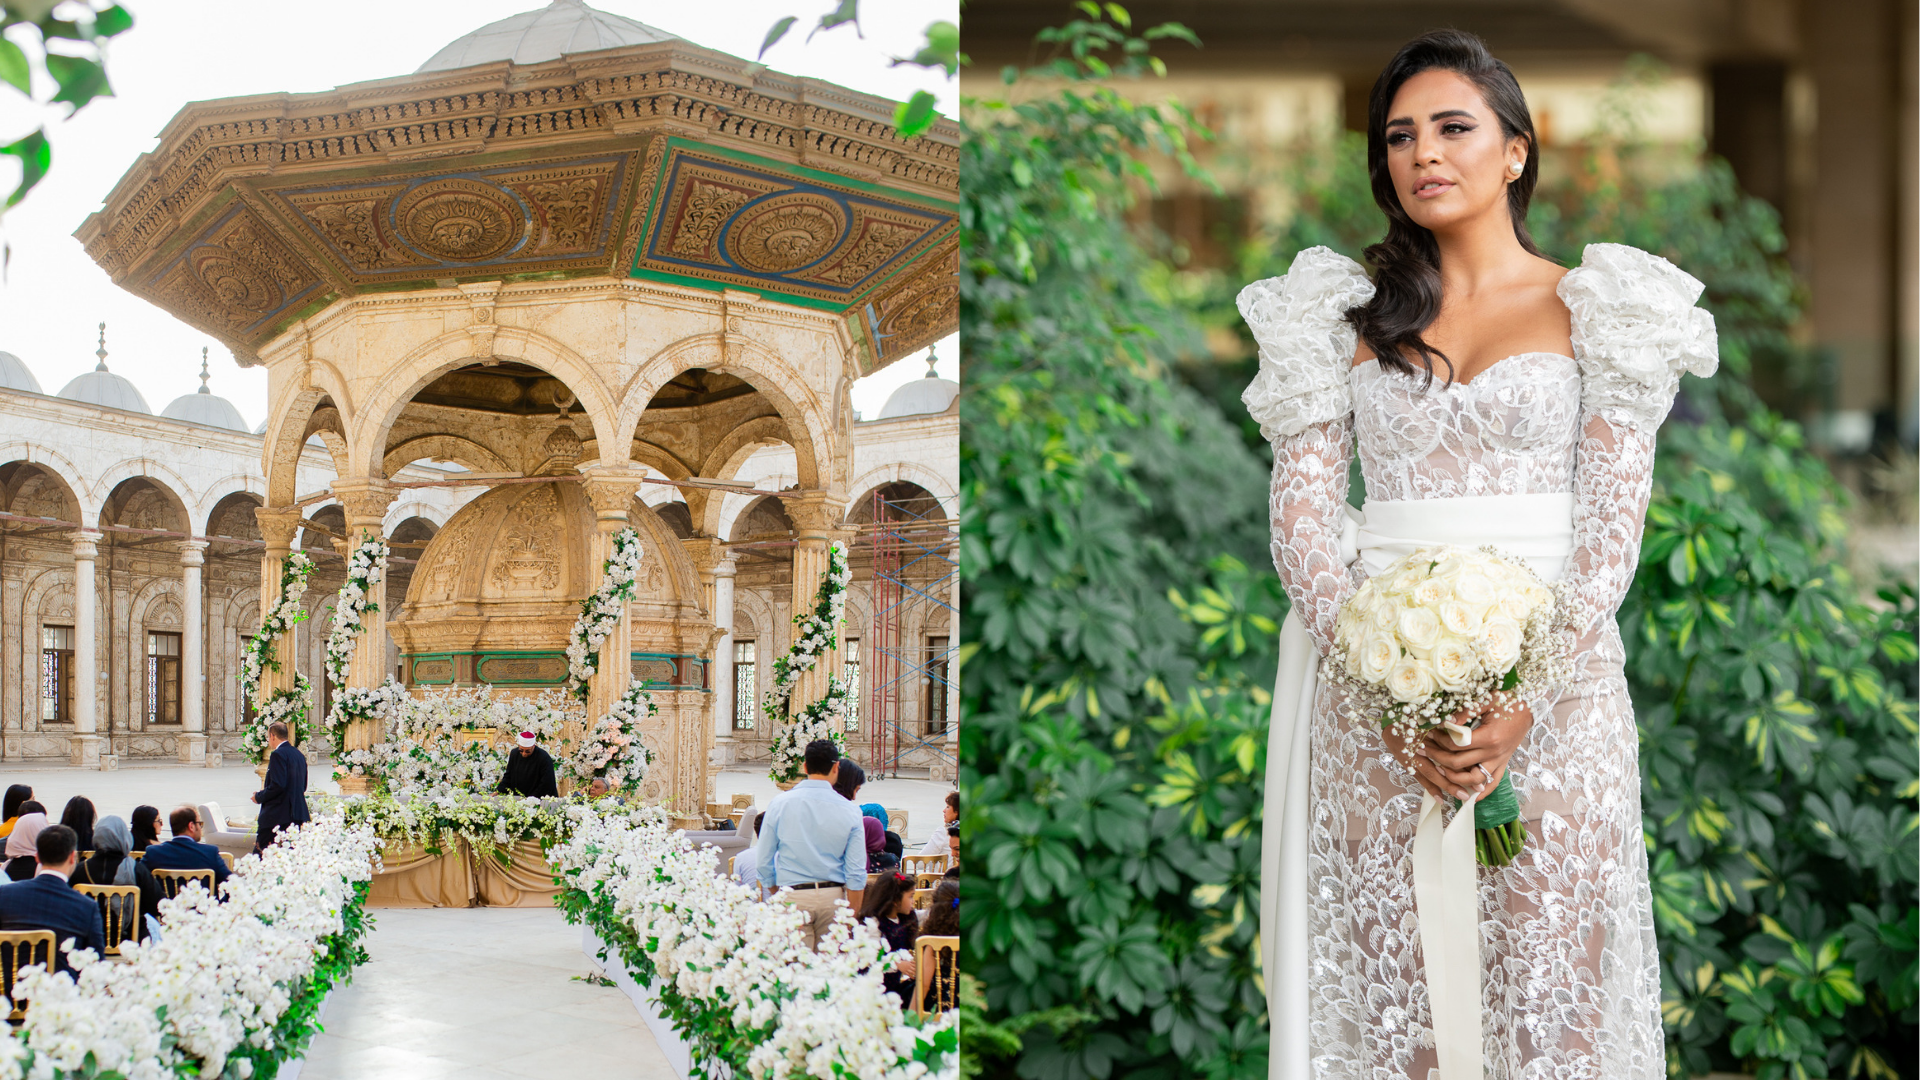 This Regional Designer Glammed Up Cairo's Latest High-Profile Wedding